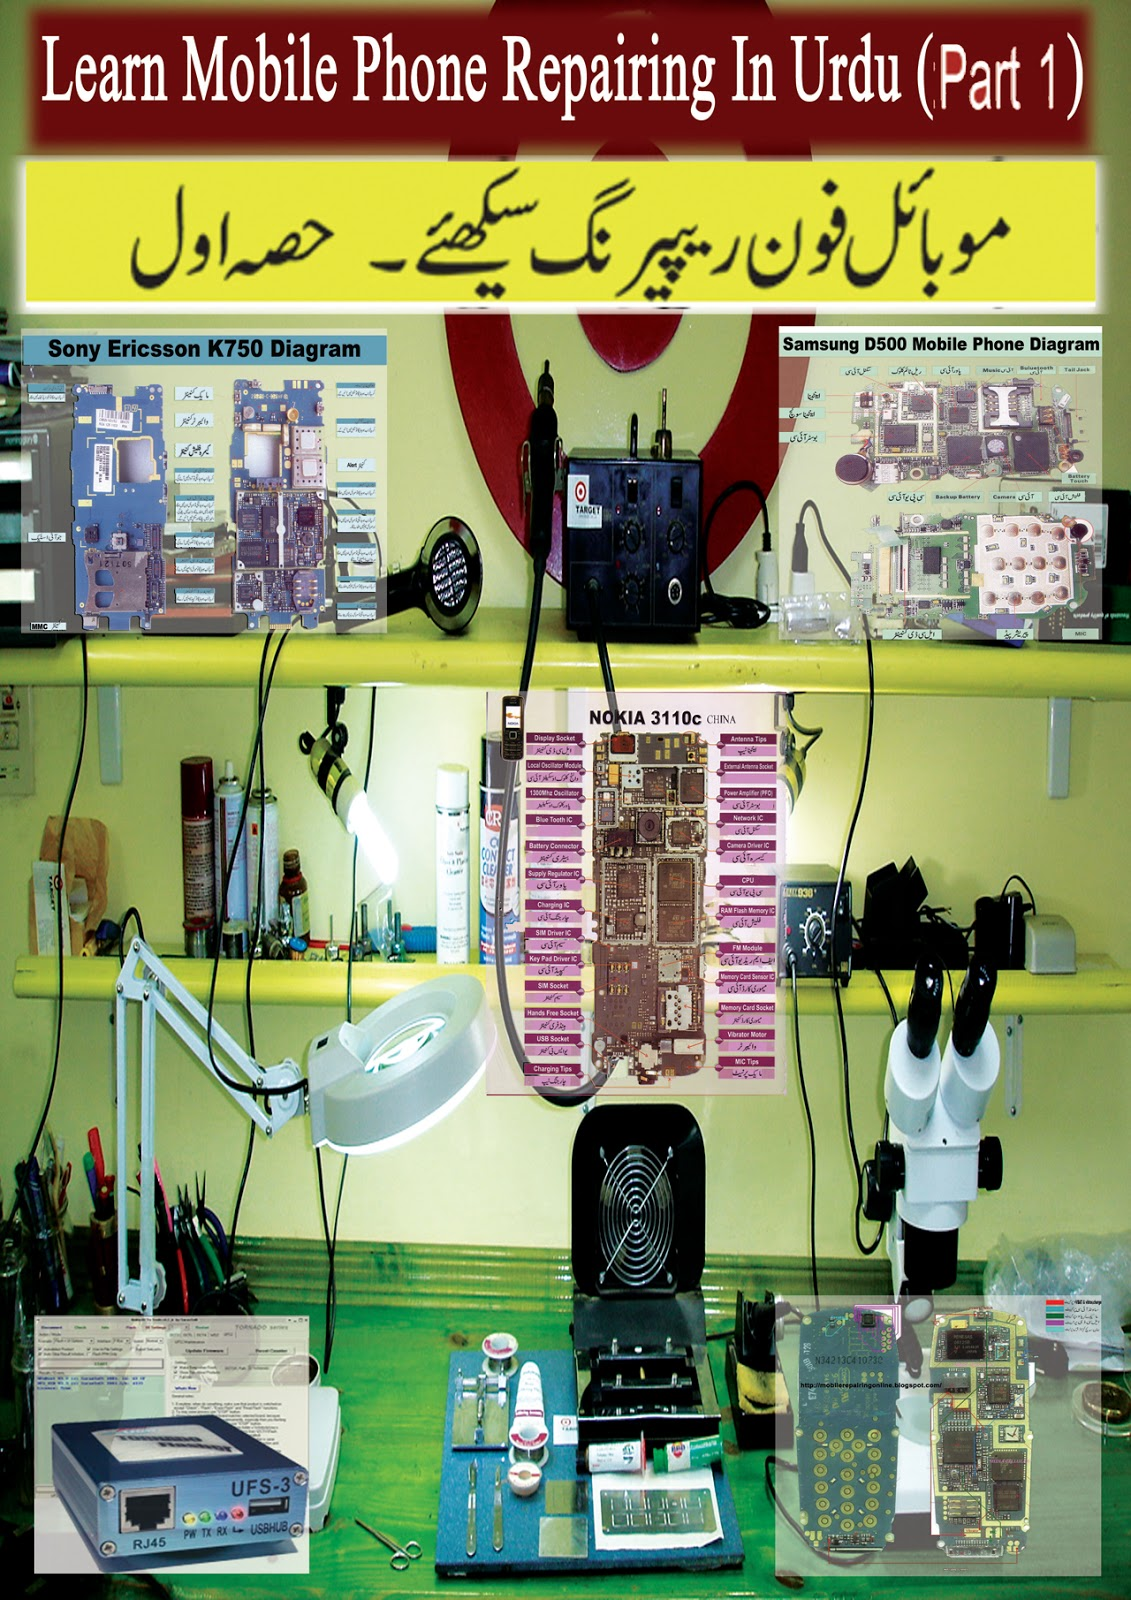 Mobile repairing diagram in urdu mobilerepairingonline cell phone diagram in hindi ccuart Images